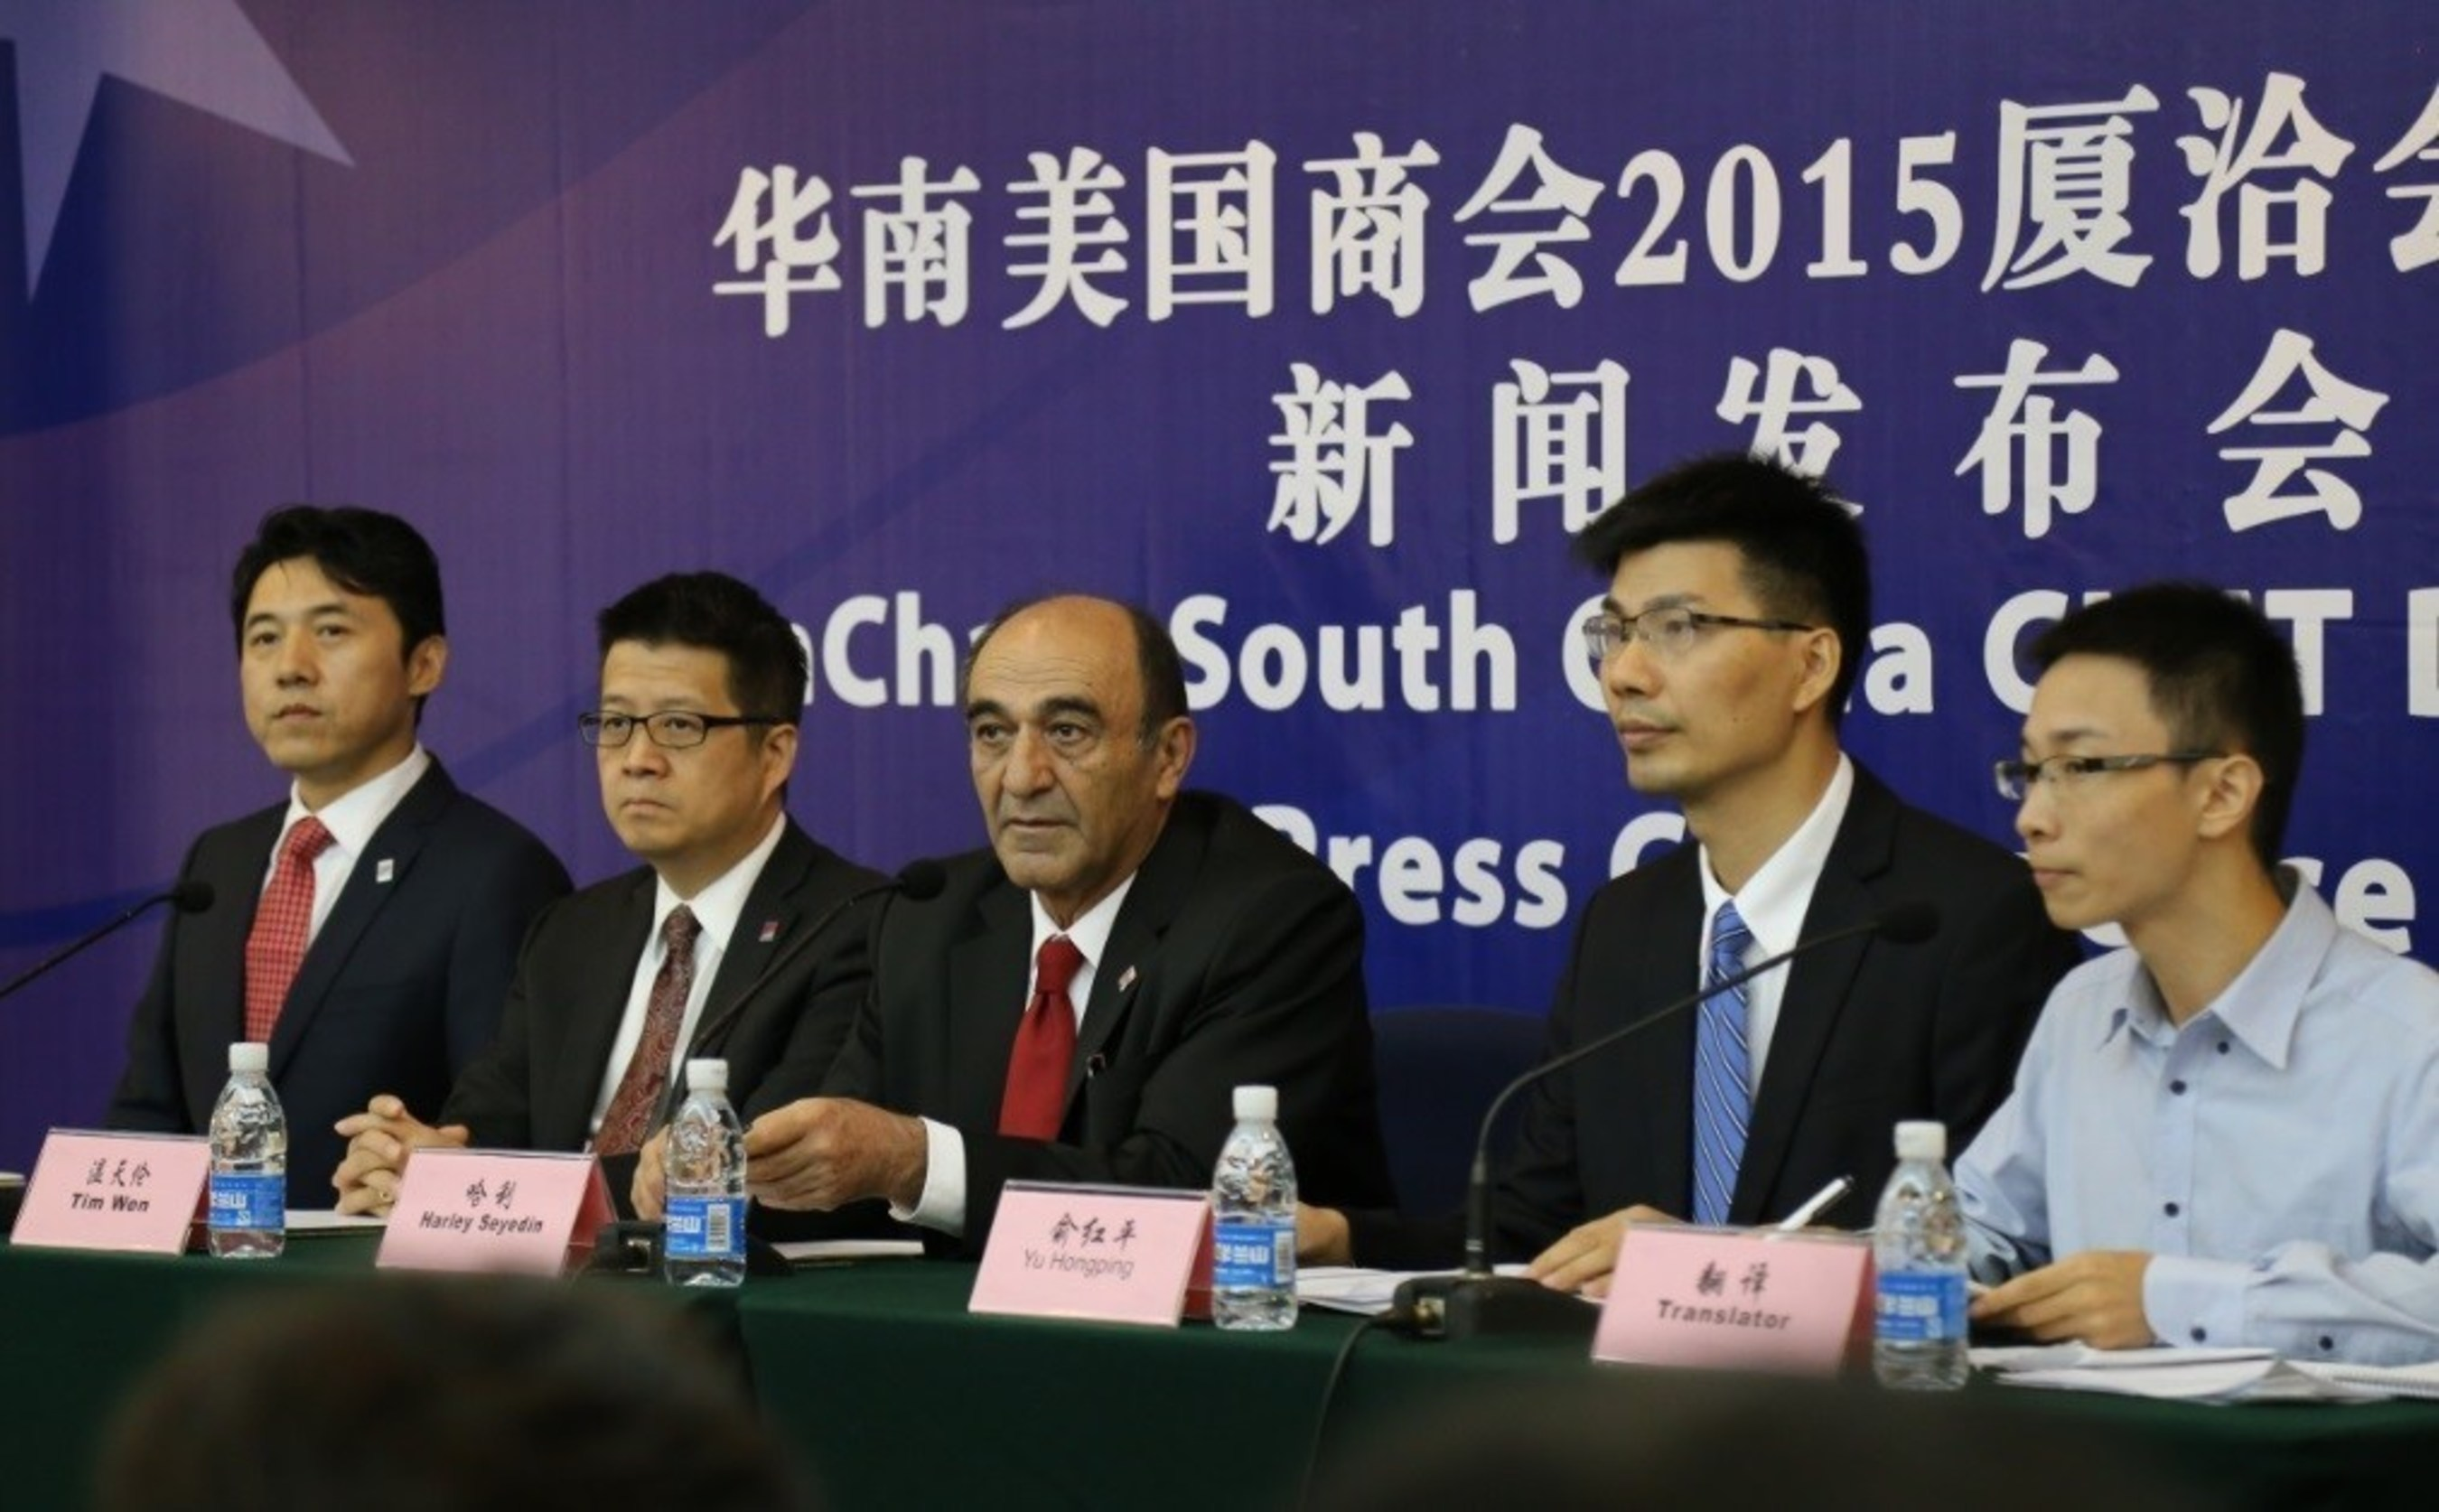 AmCham South China CIFIT Press Conference